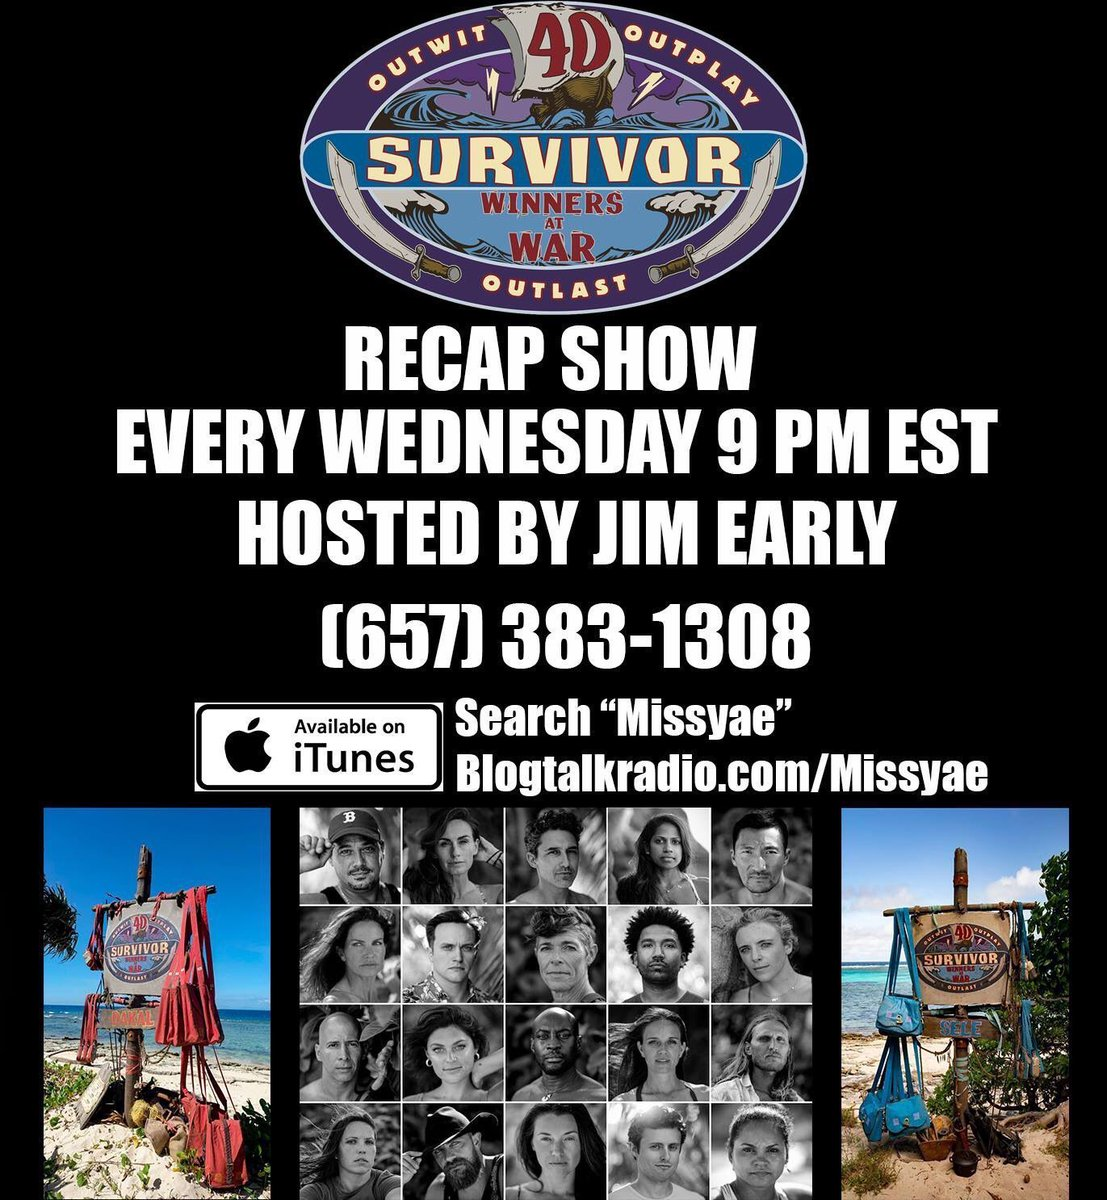 Tomorrow night!! @TheGameSurvivor presents another edition of the #MissyaePodcast: #SurvivorWinnersAtWar Recap Podcast!! It's #Merge time!! Who will come back from the #EdgeOfExtinction? #Survivor #SurvivorWhispersFacebook #Survivor40 http://tobtr.com/s/11704767